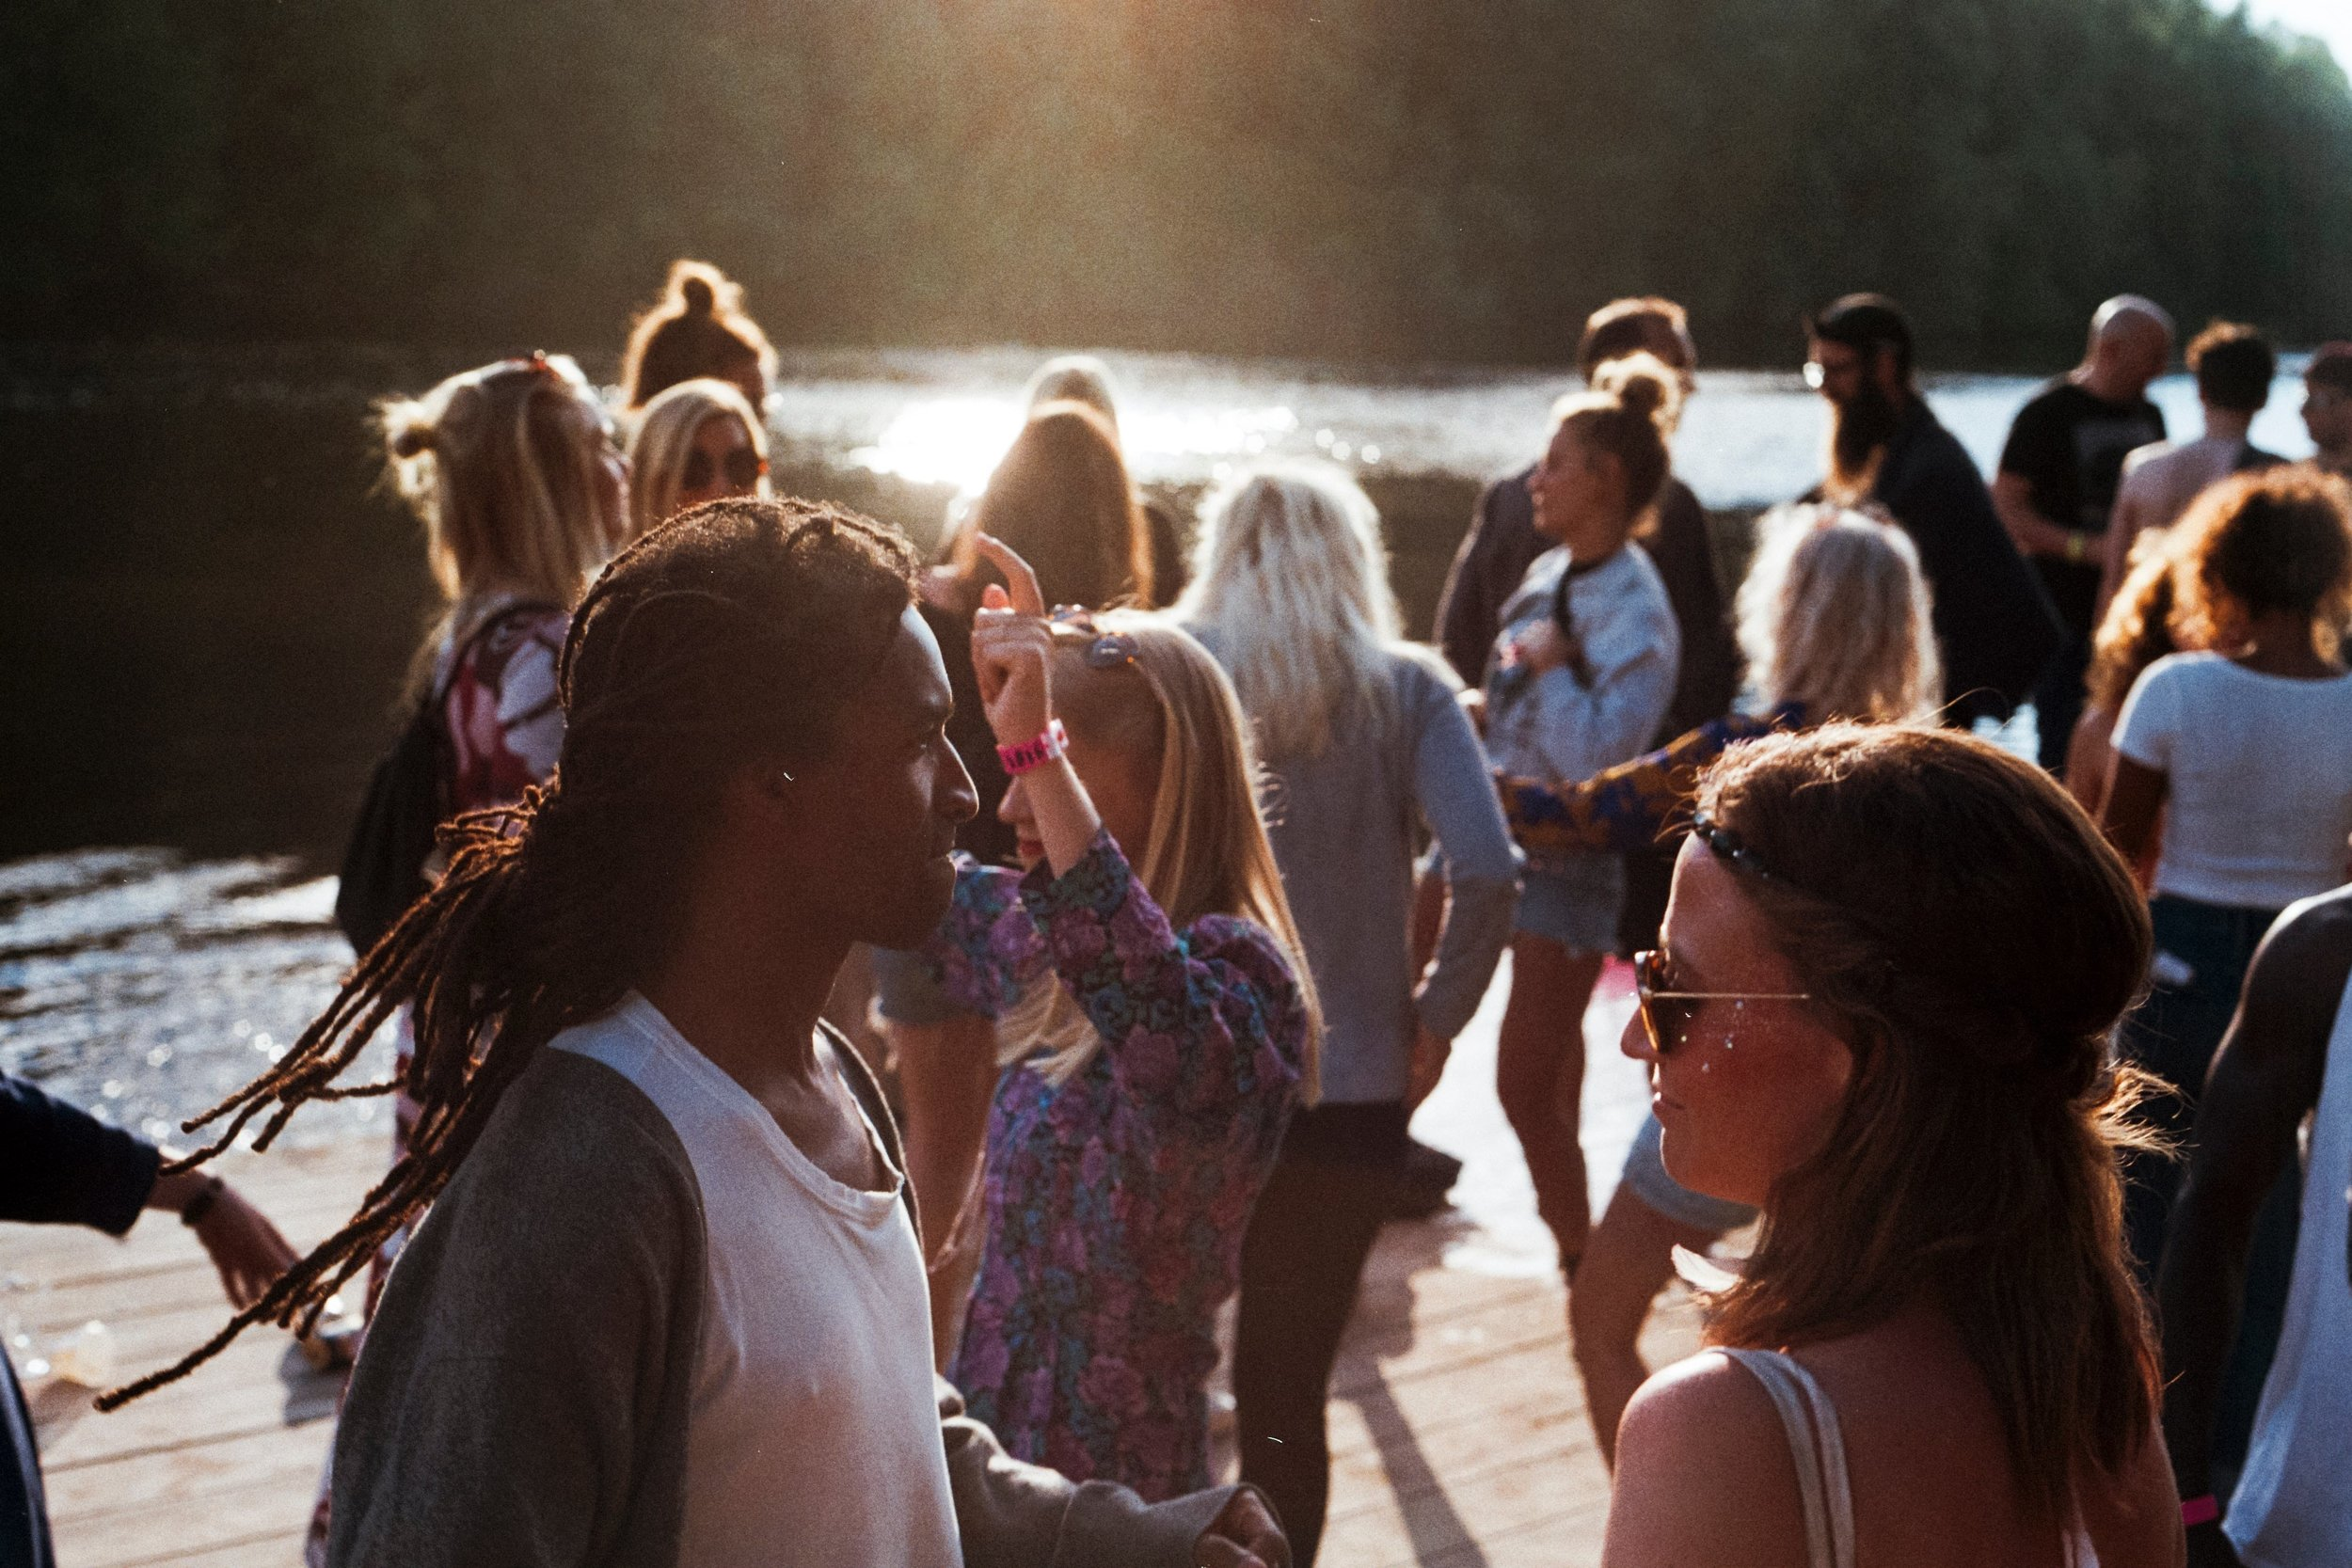 Social Anxiety: What Is It and What Can I Do About It?